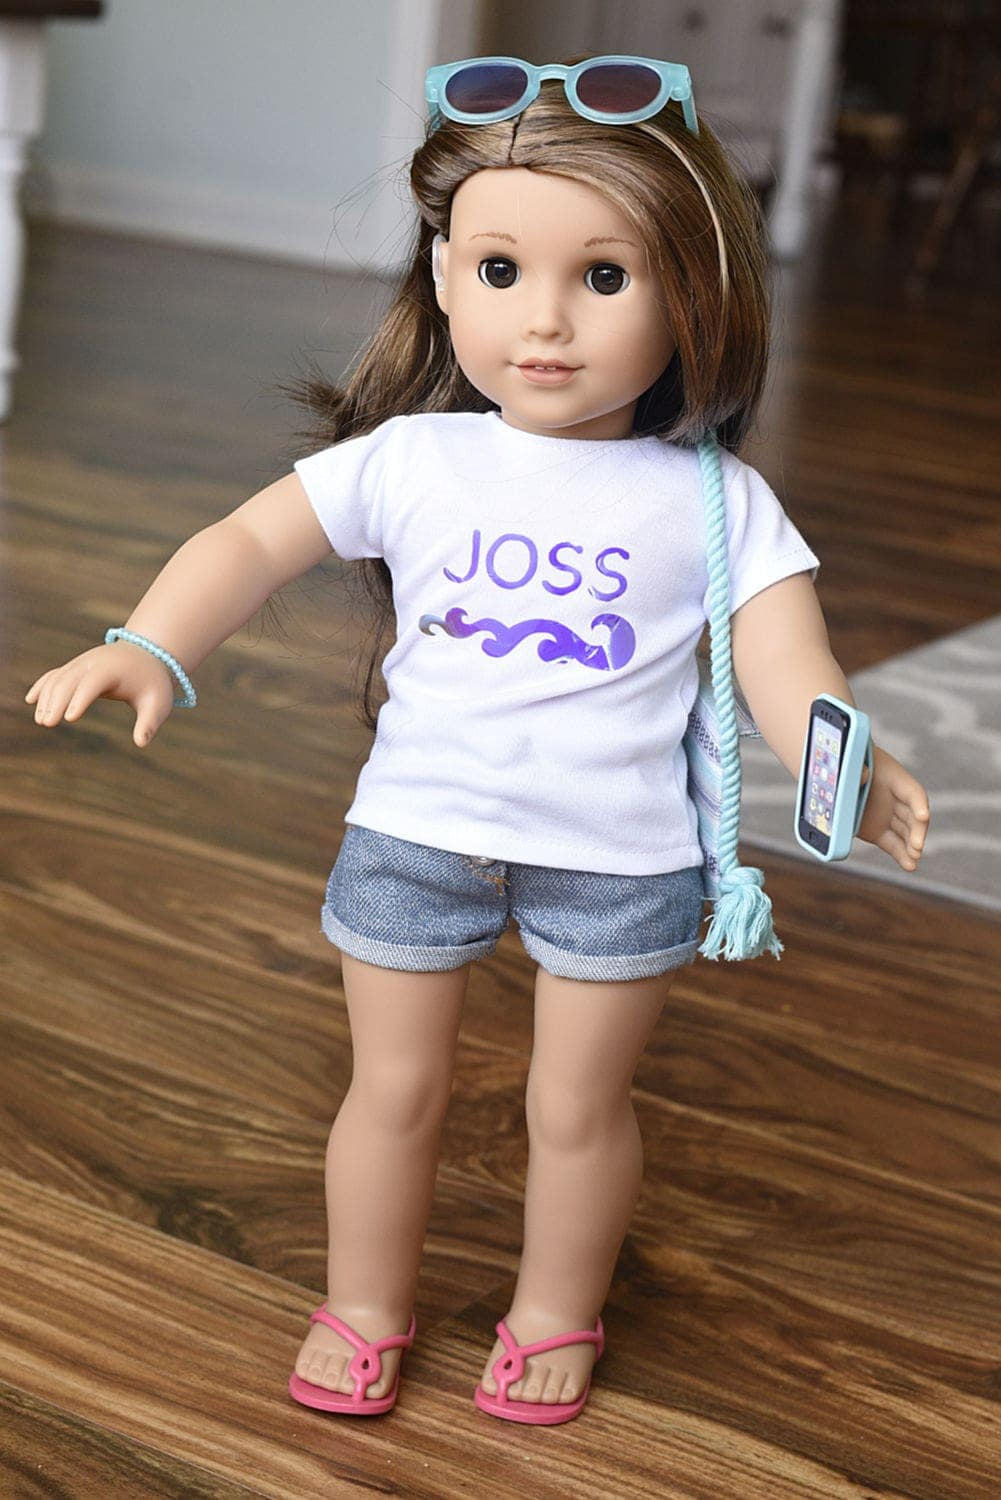 a doll named Joss with her accessories